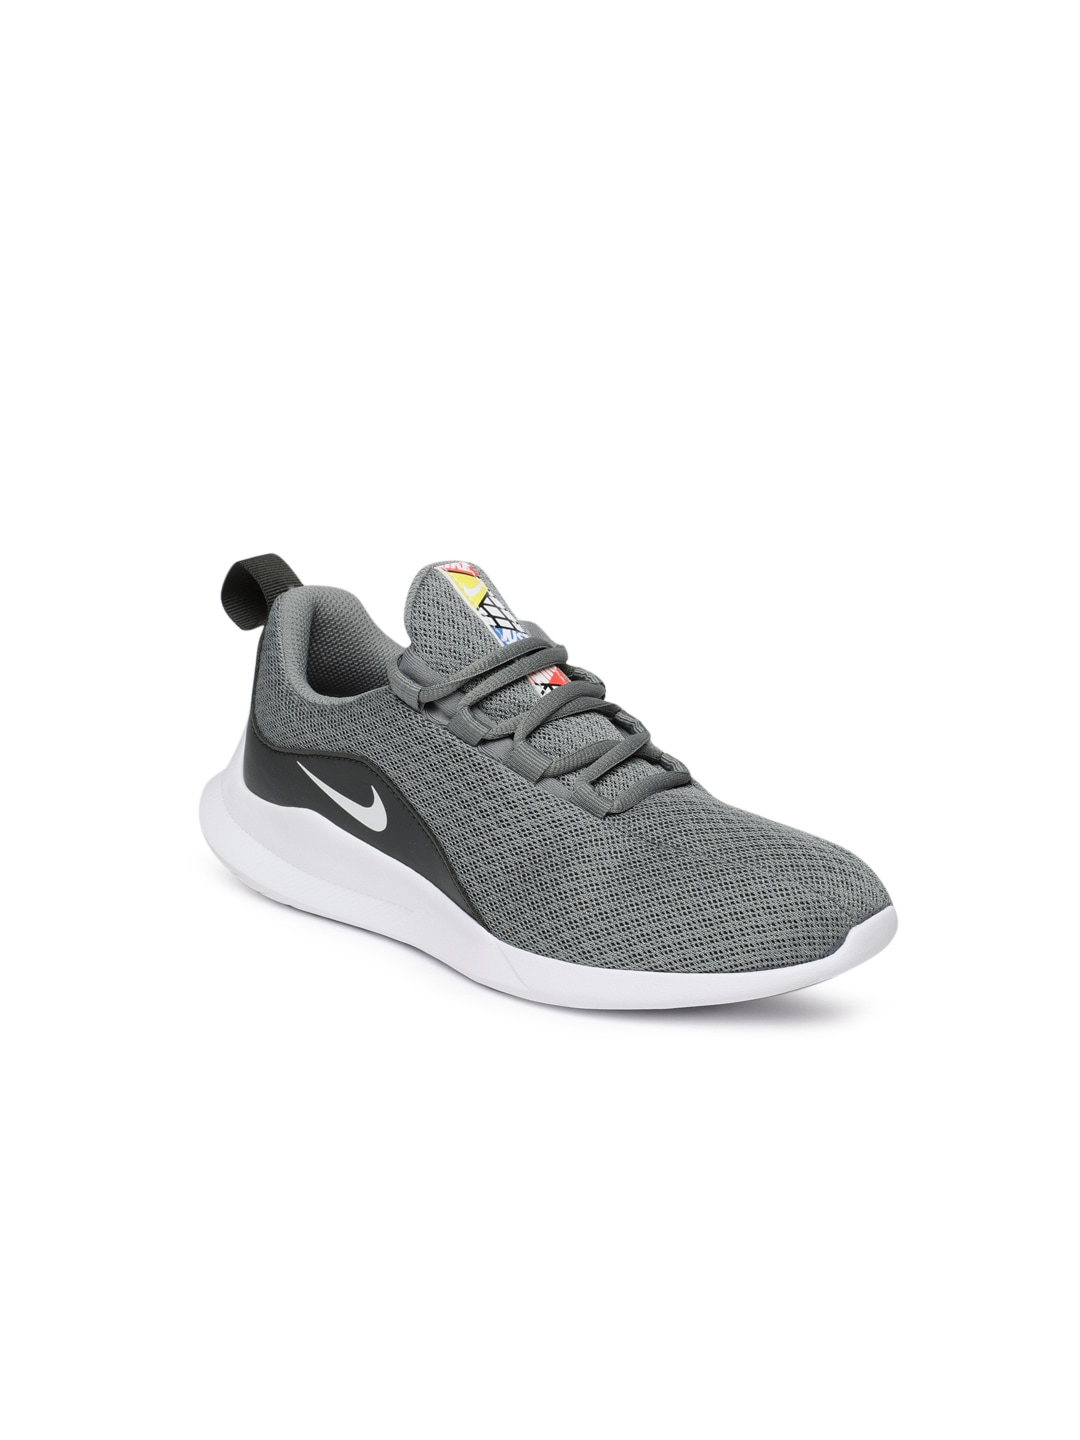 low priced c8a98 17d82 Nike Grey Shoes Casual - Buy Nike Grey Shoes Casual online in India